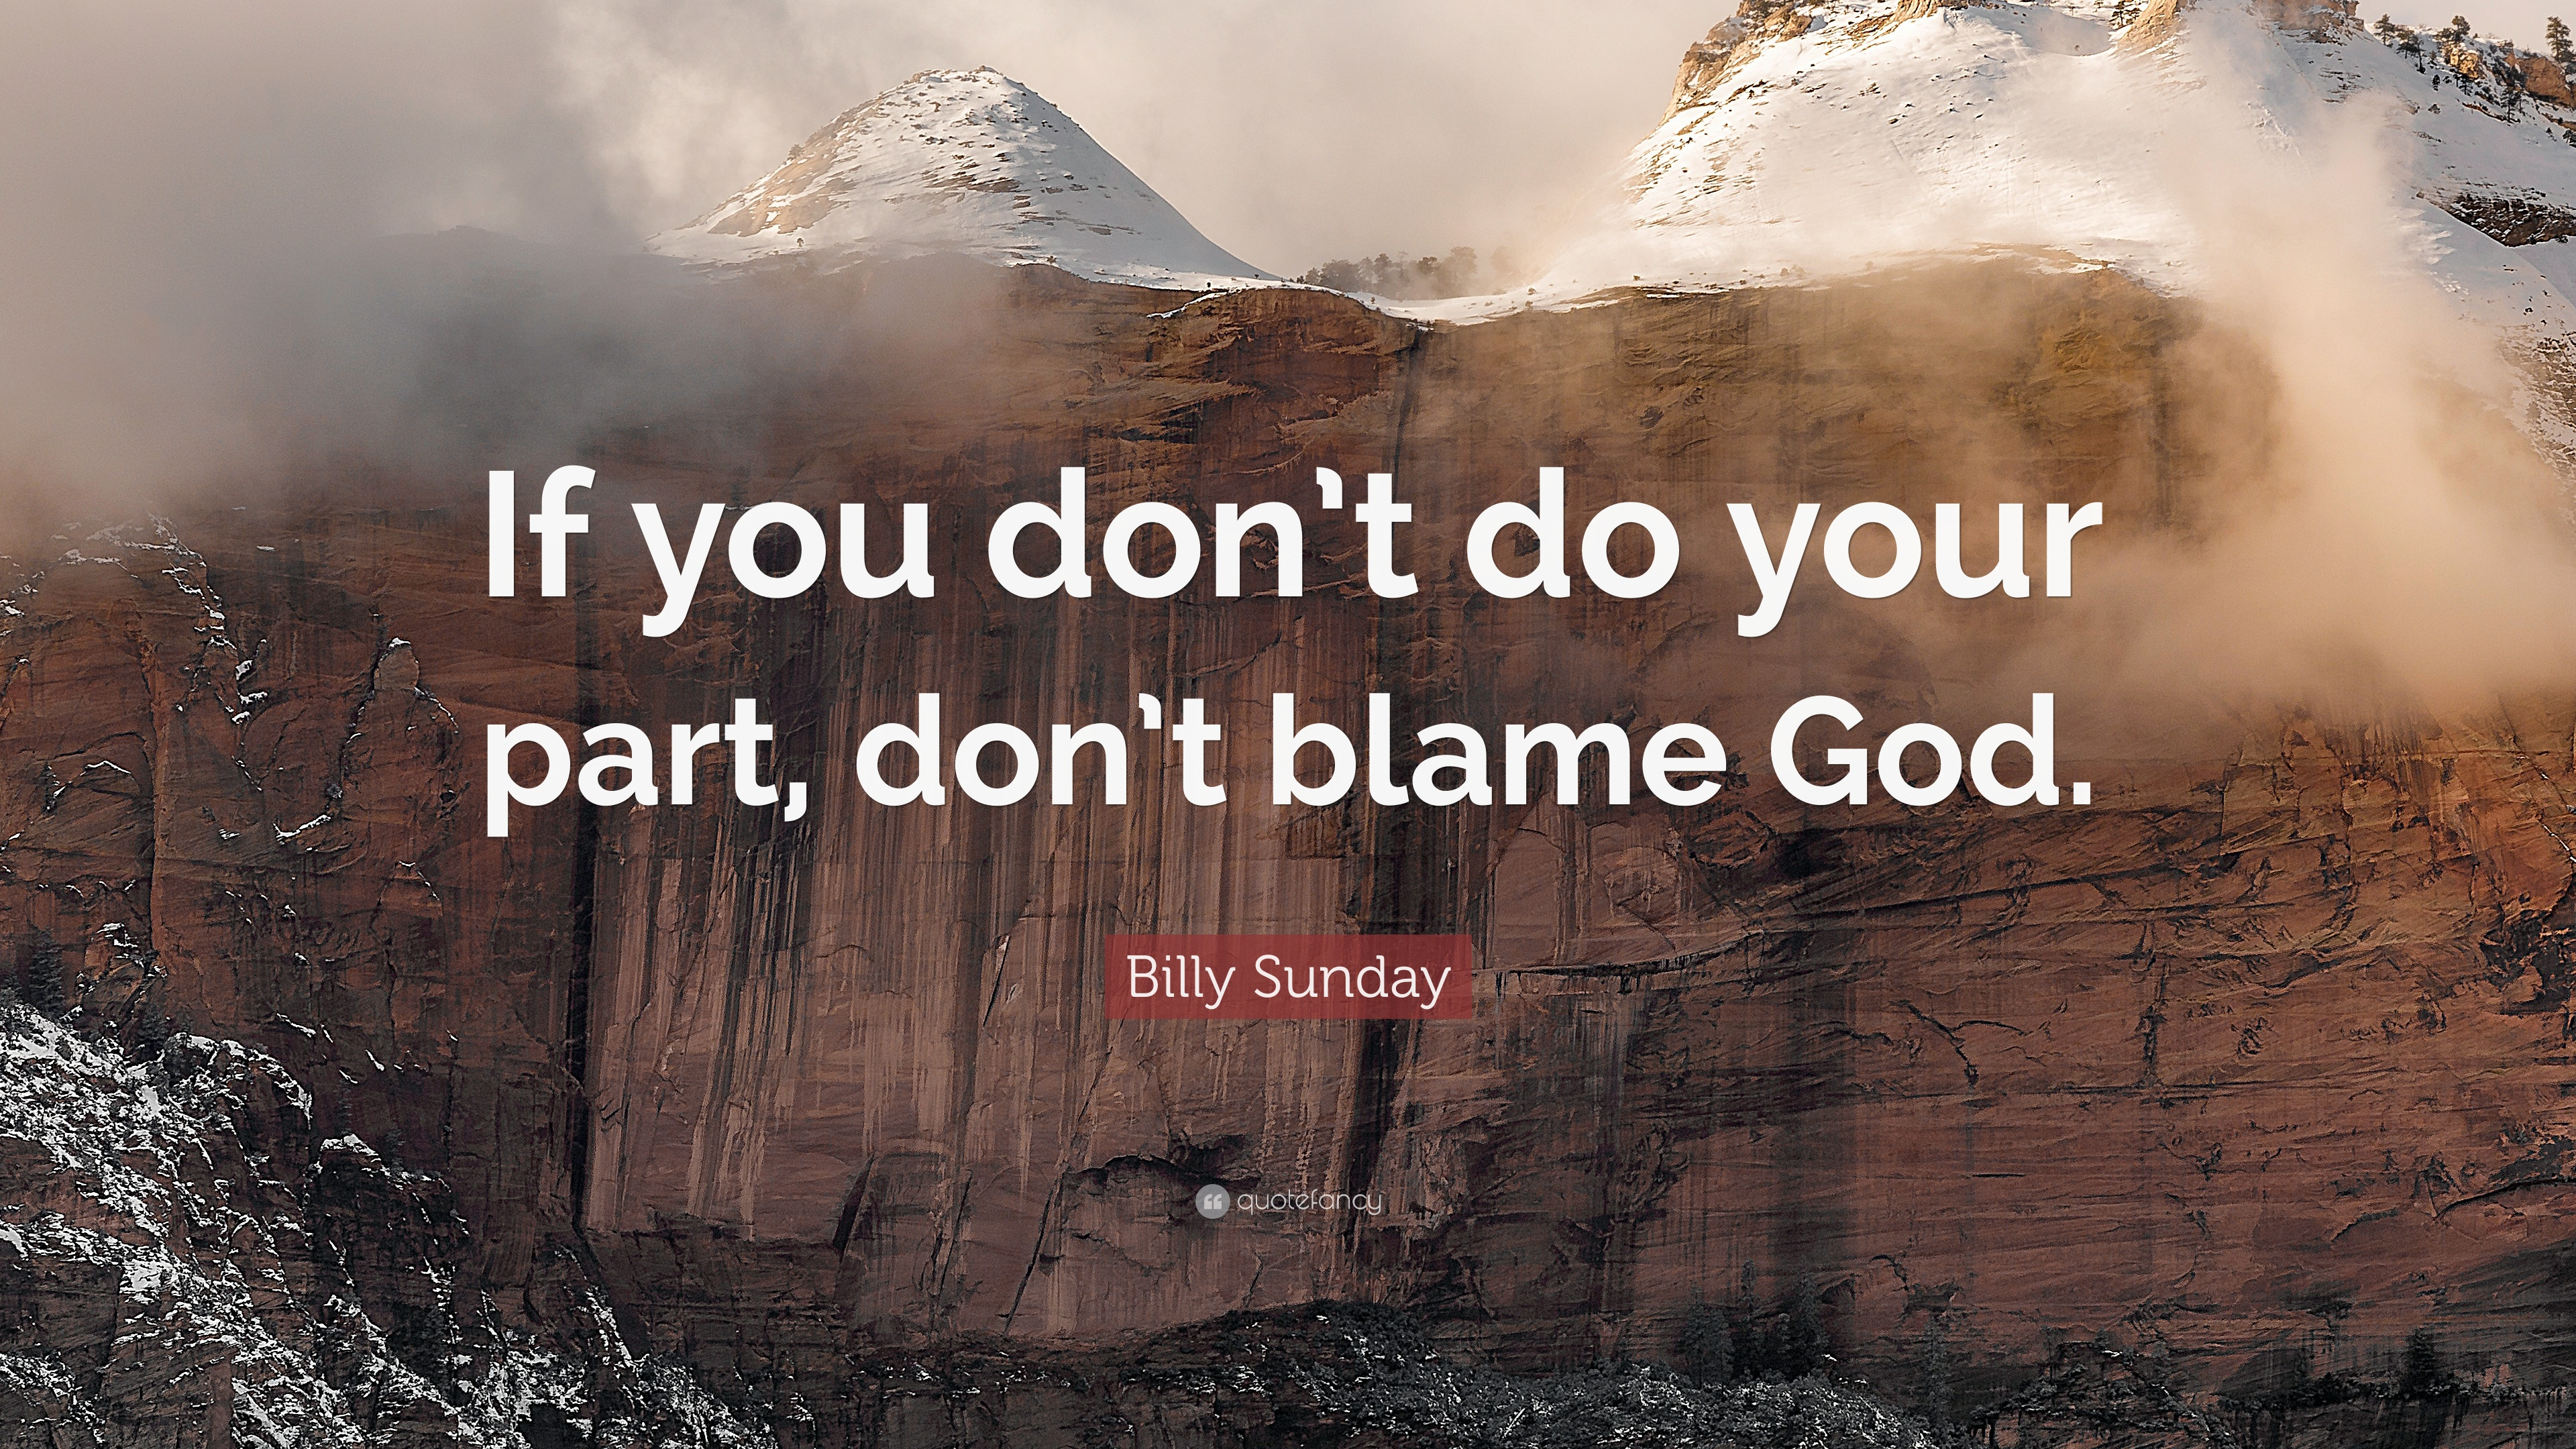 Billy Sunday Quotes (97 wallpapers) - Quotefancy